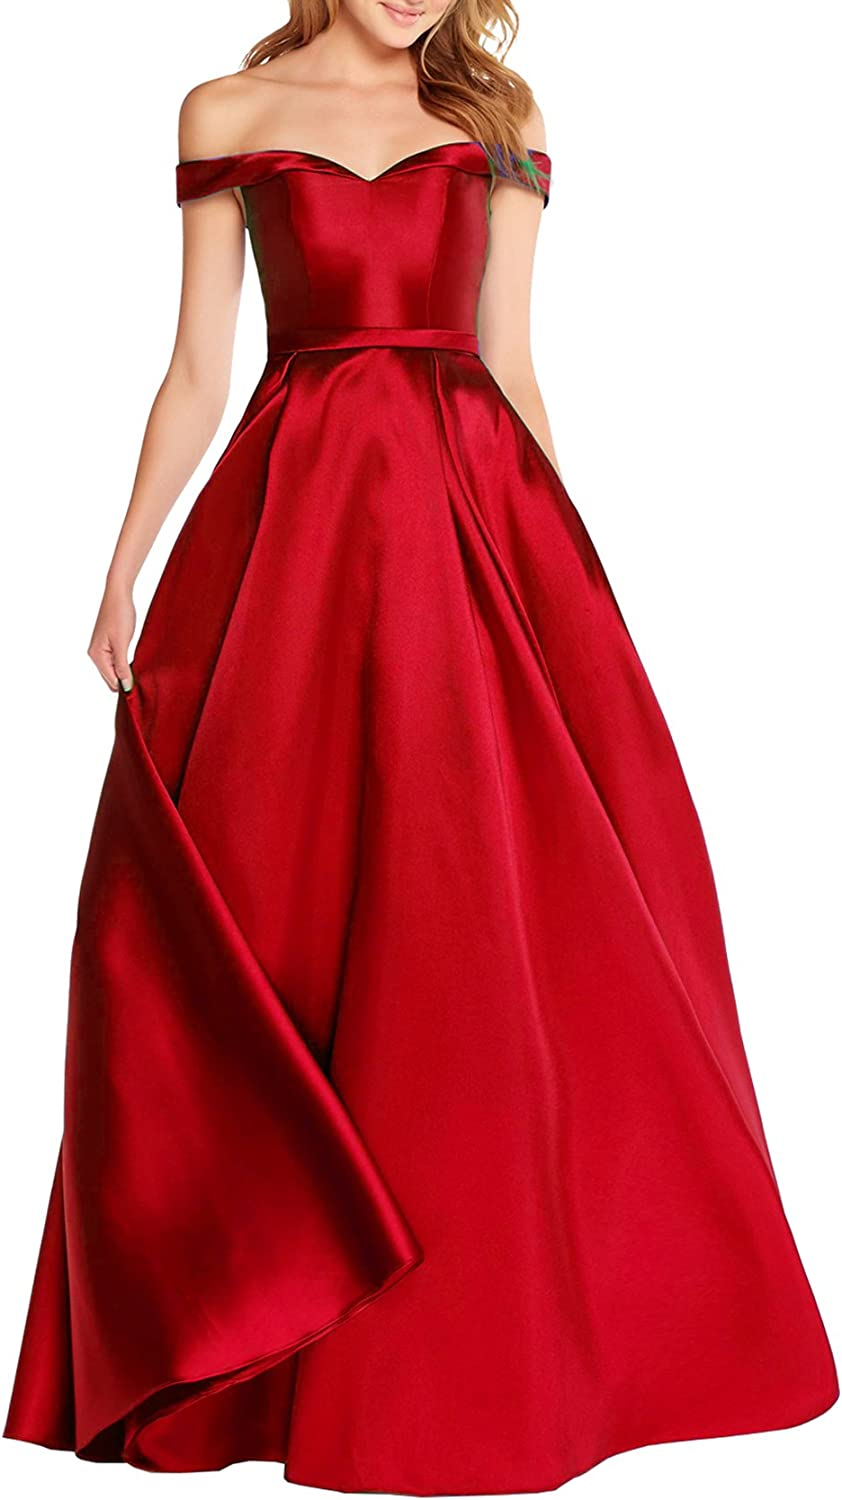 Beauty Bridal Women's Off The Shoulder Satin Evening Dresses Long Prom Gowns with Pocket S041